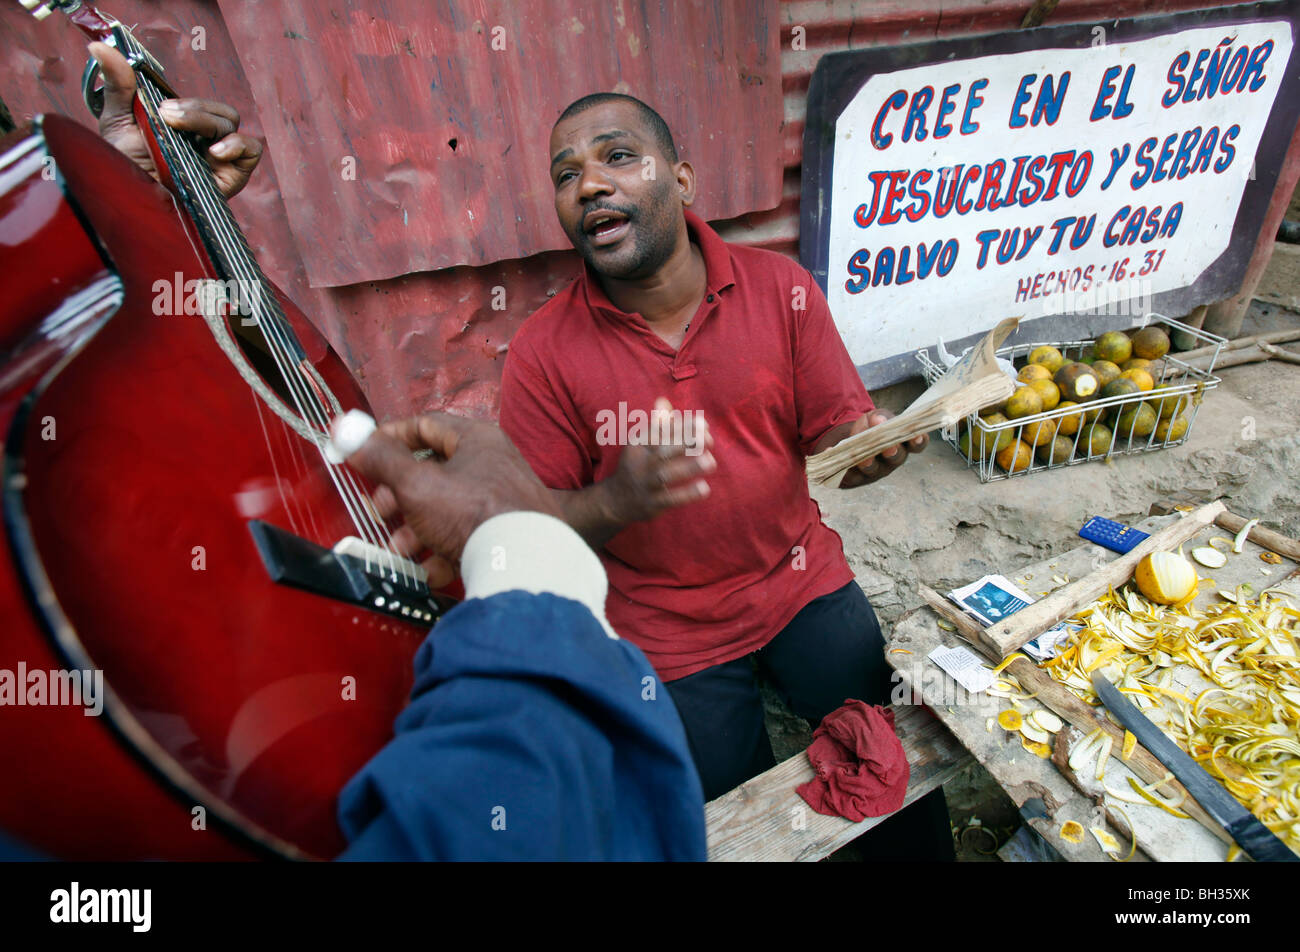 A man sings religious songs accompanied by a guitar at a roadside stand, Samana peninsula, Dominican Republic - Stock Image